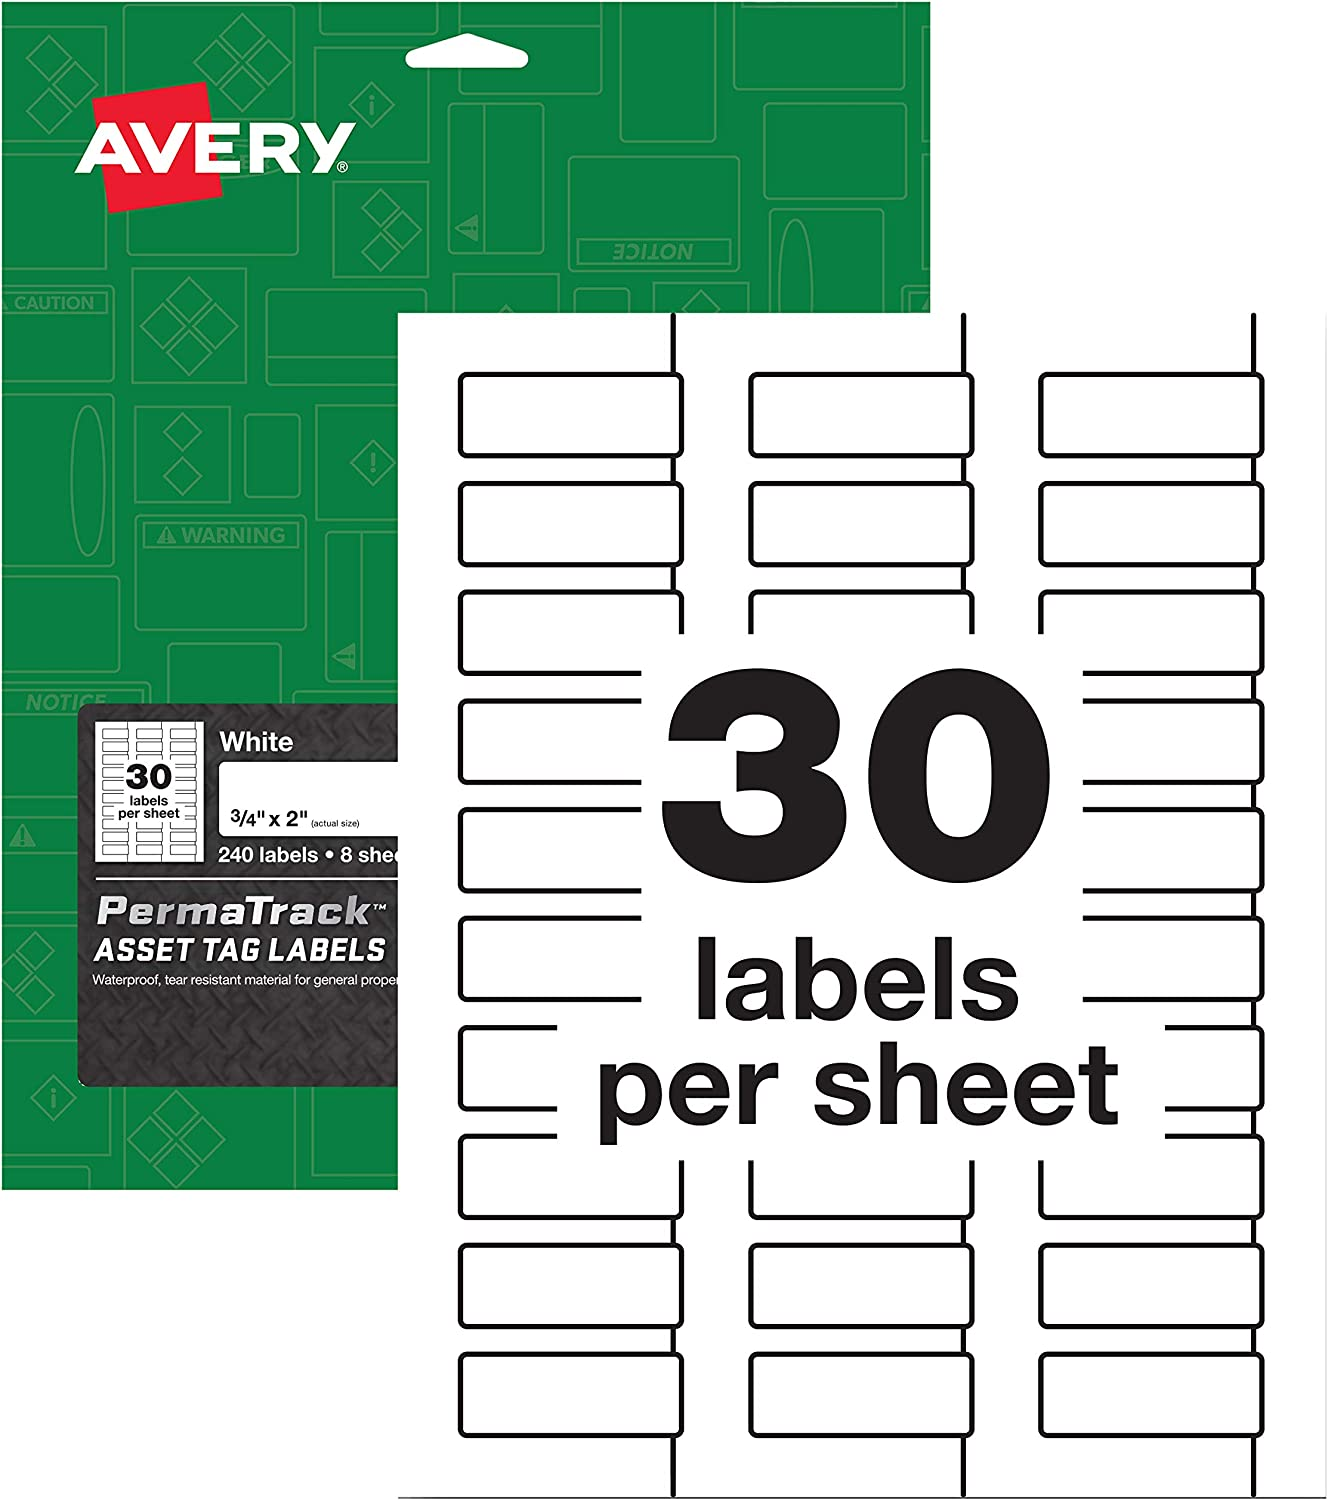 """AVERY PermaTrack Durable White Asset Tag Labels, 3/4"""" x 2"""", 240 Labels (61526)"""